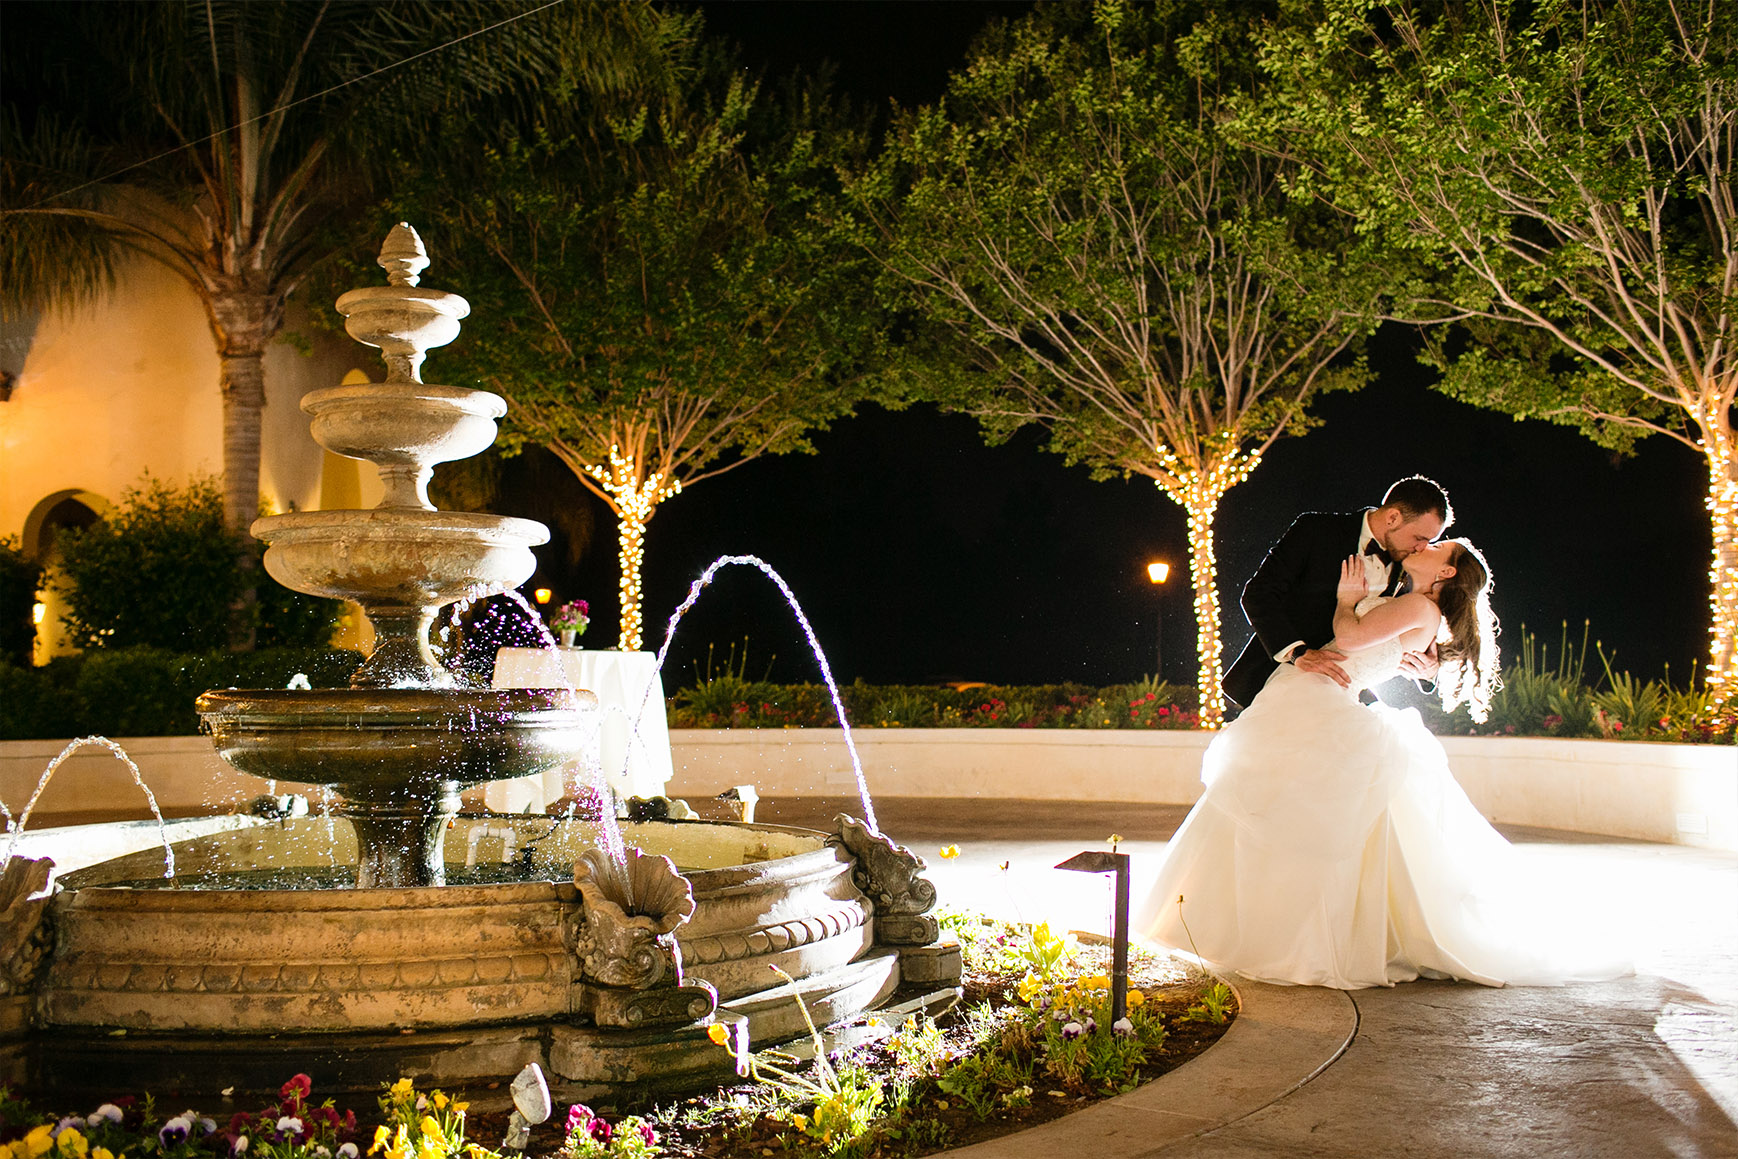 Bride and Groom by Fountain - Fallbrook - Fallbrook, California - San Diego County - Wedgewood Weddings